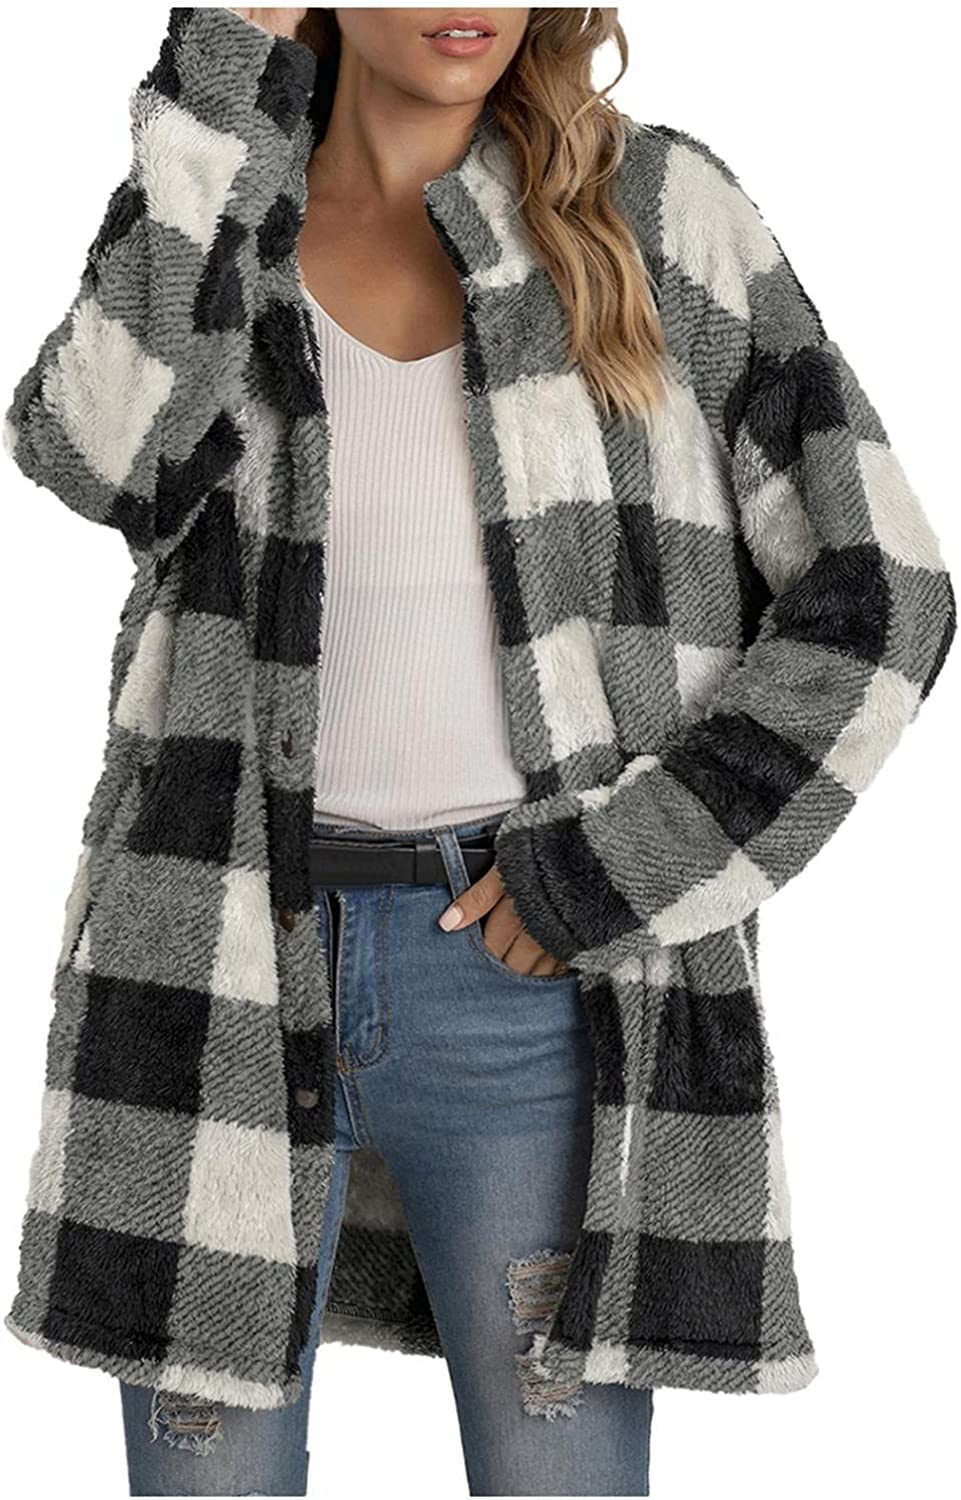 Women's Casual Parkas With Fur Hood Cardigan Coat Christmas Plaid Printing Long Sleeve Buttons Plush Outwear Overcoat